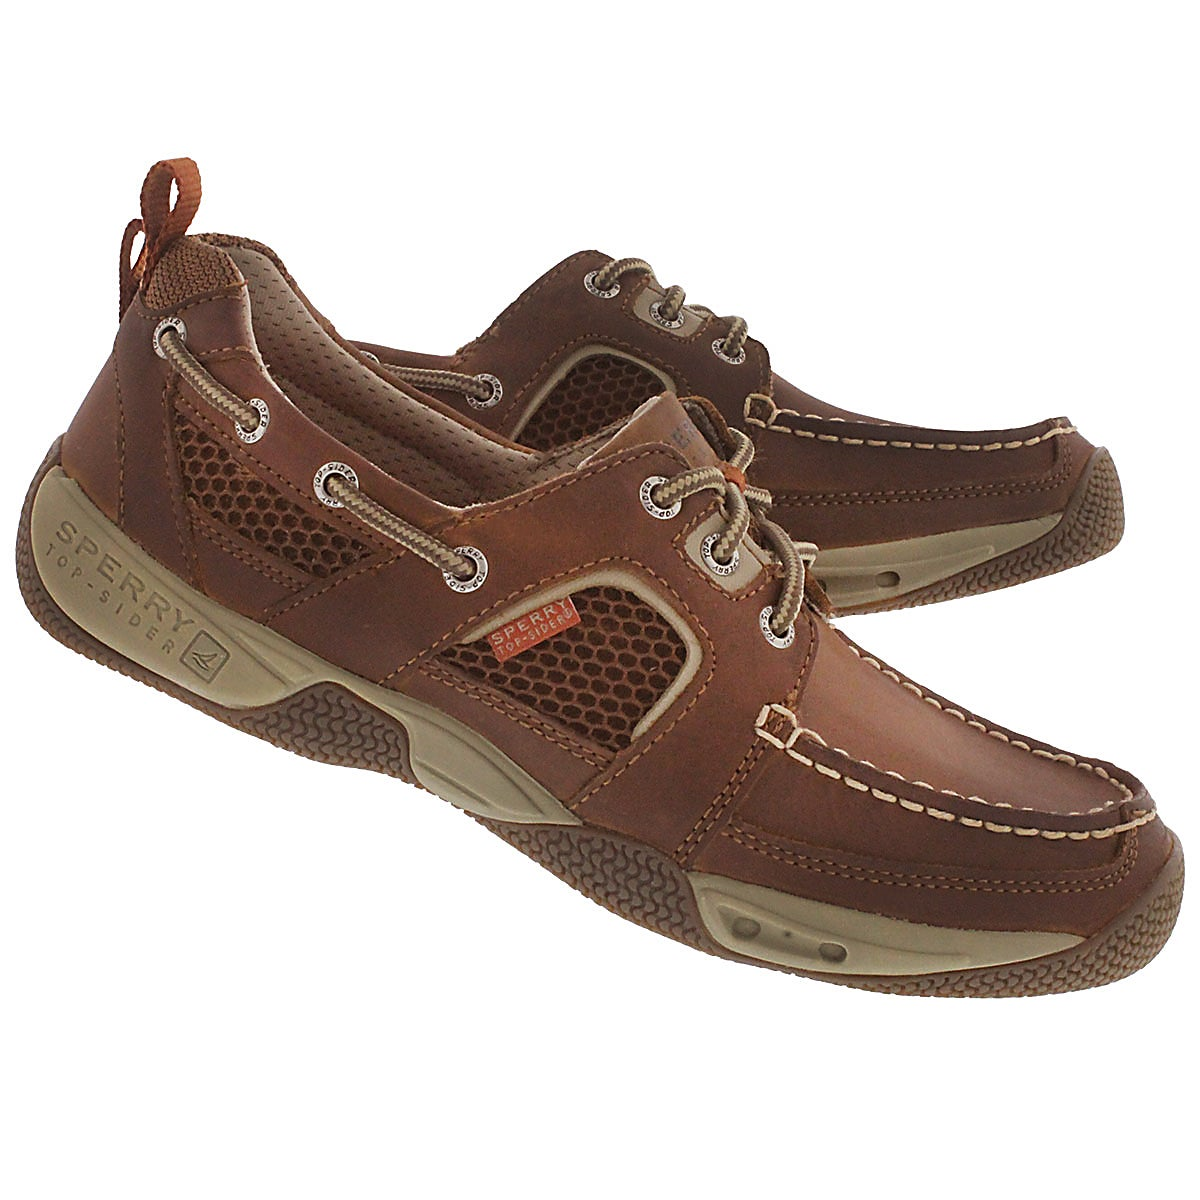 Mocassin sport tan SEA-KITE, hom